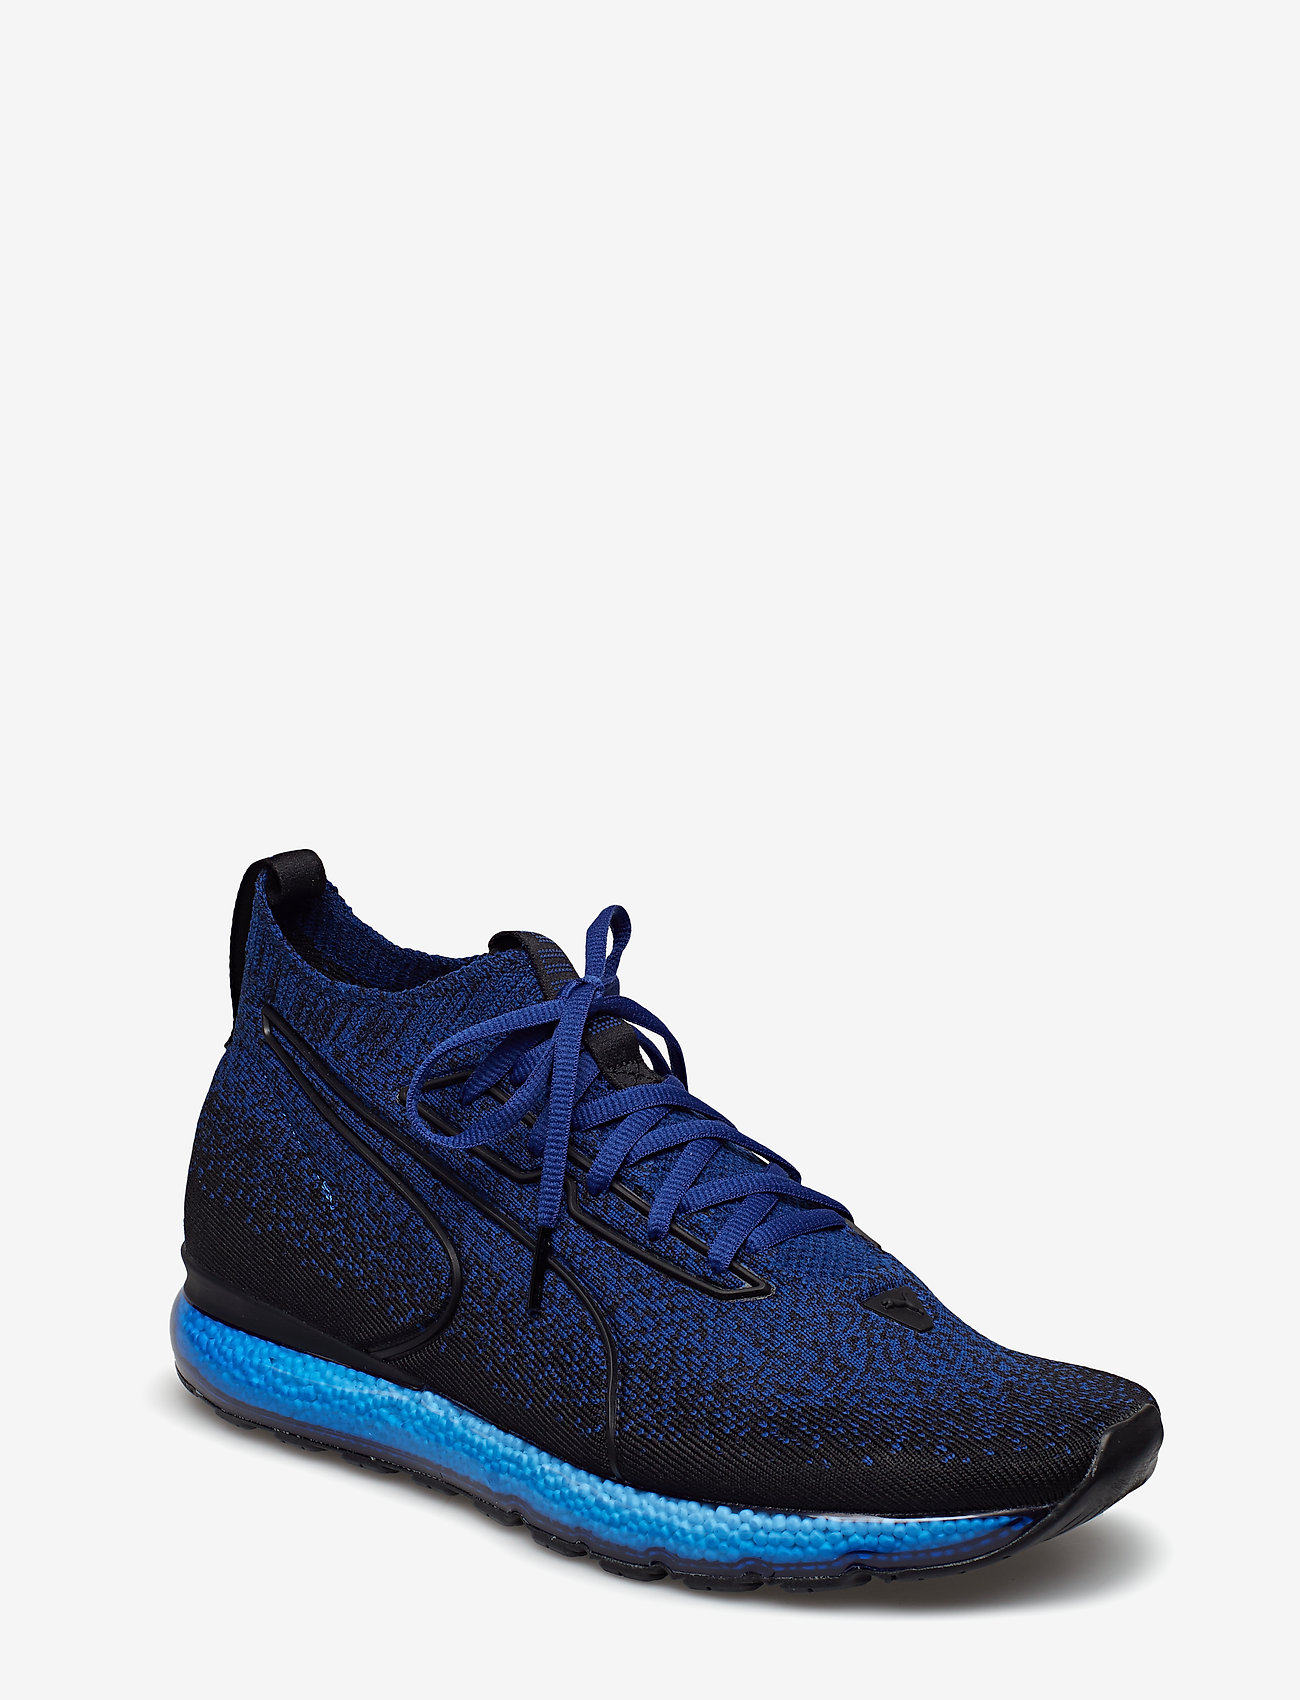 PUMA Jamming FS Chaussures: : Chaussures et Sacs